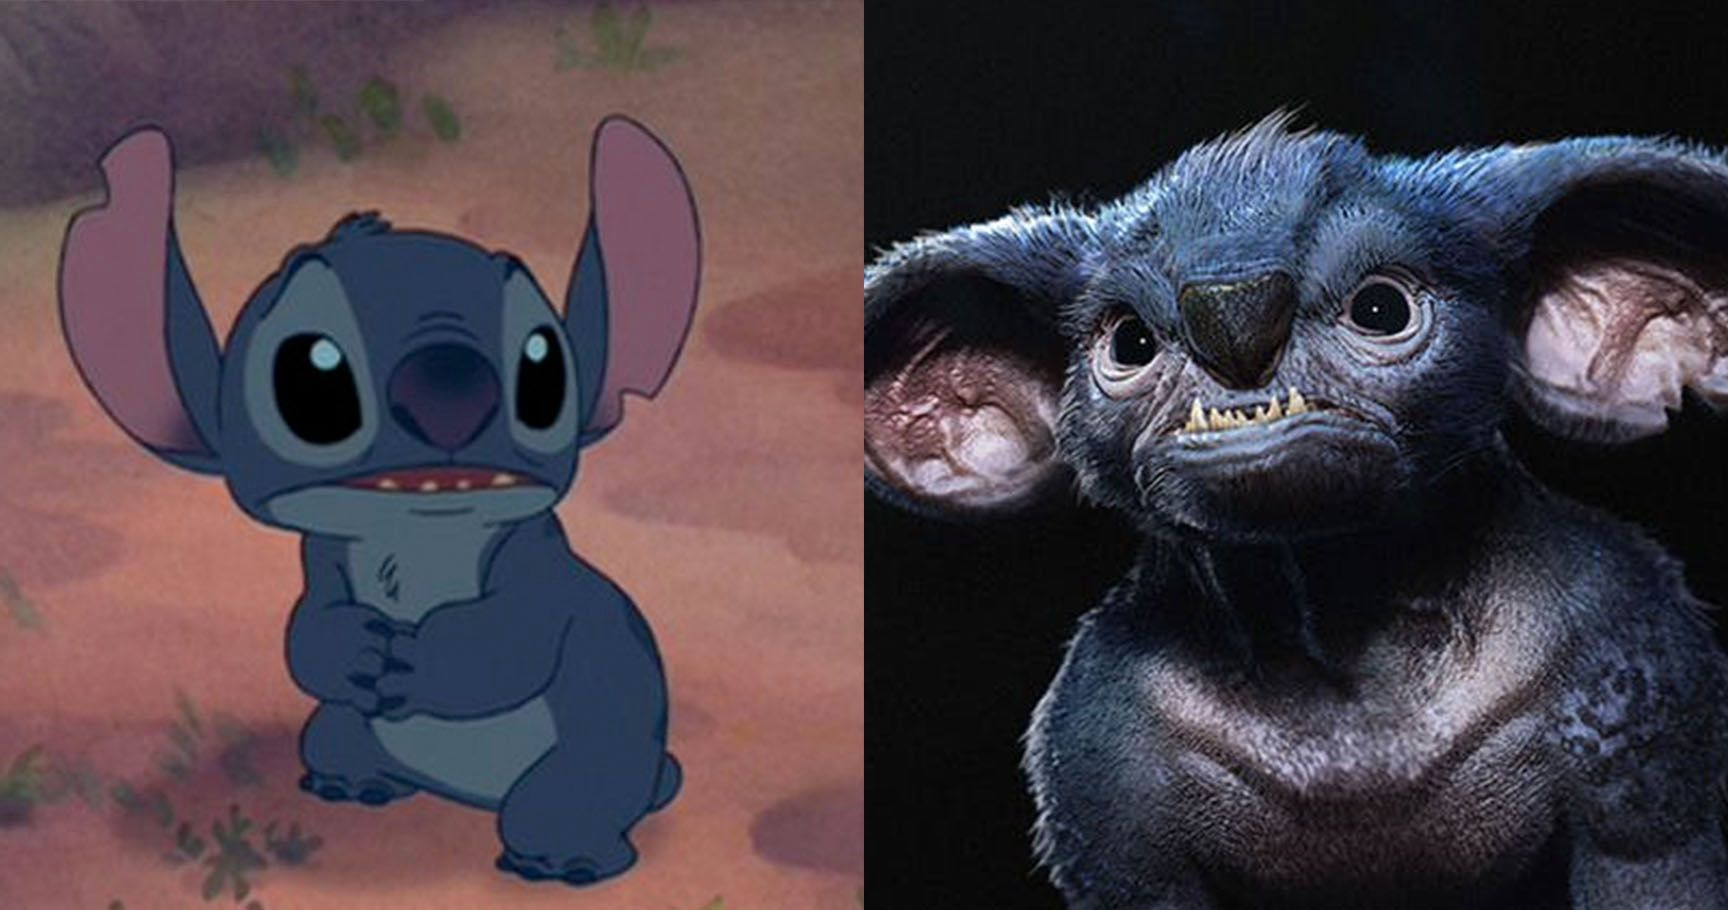 15 Hyperreal Disney Transformations That Totally DESTROYED The Magic